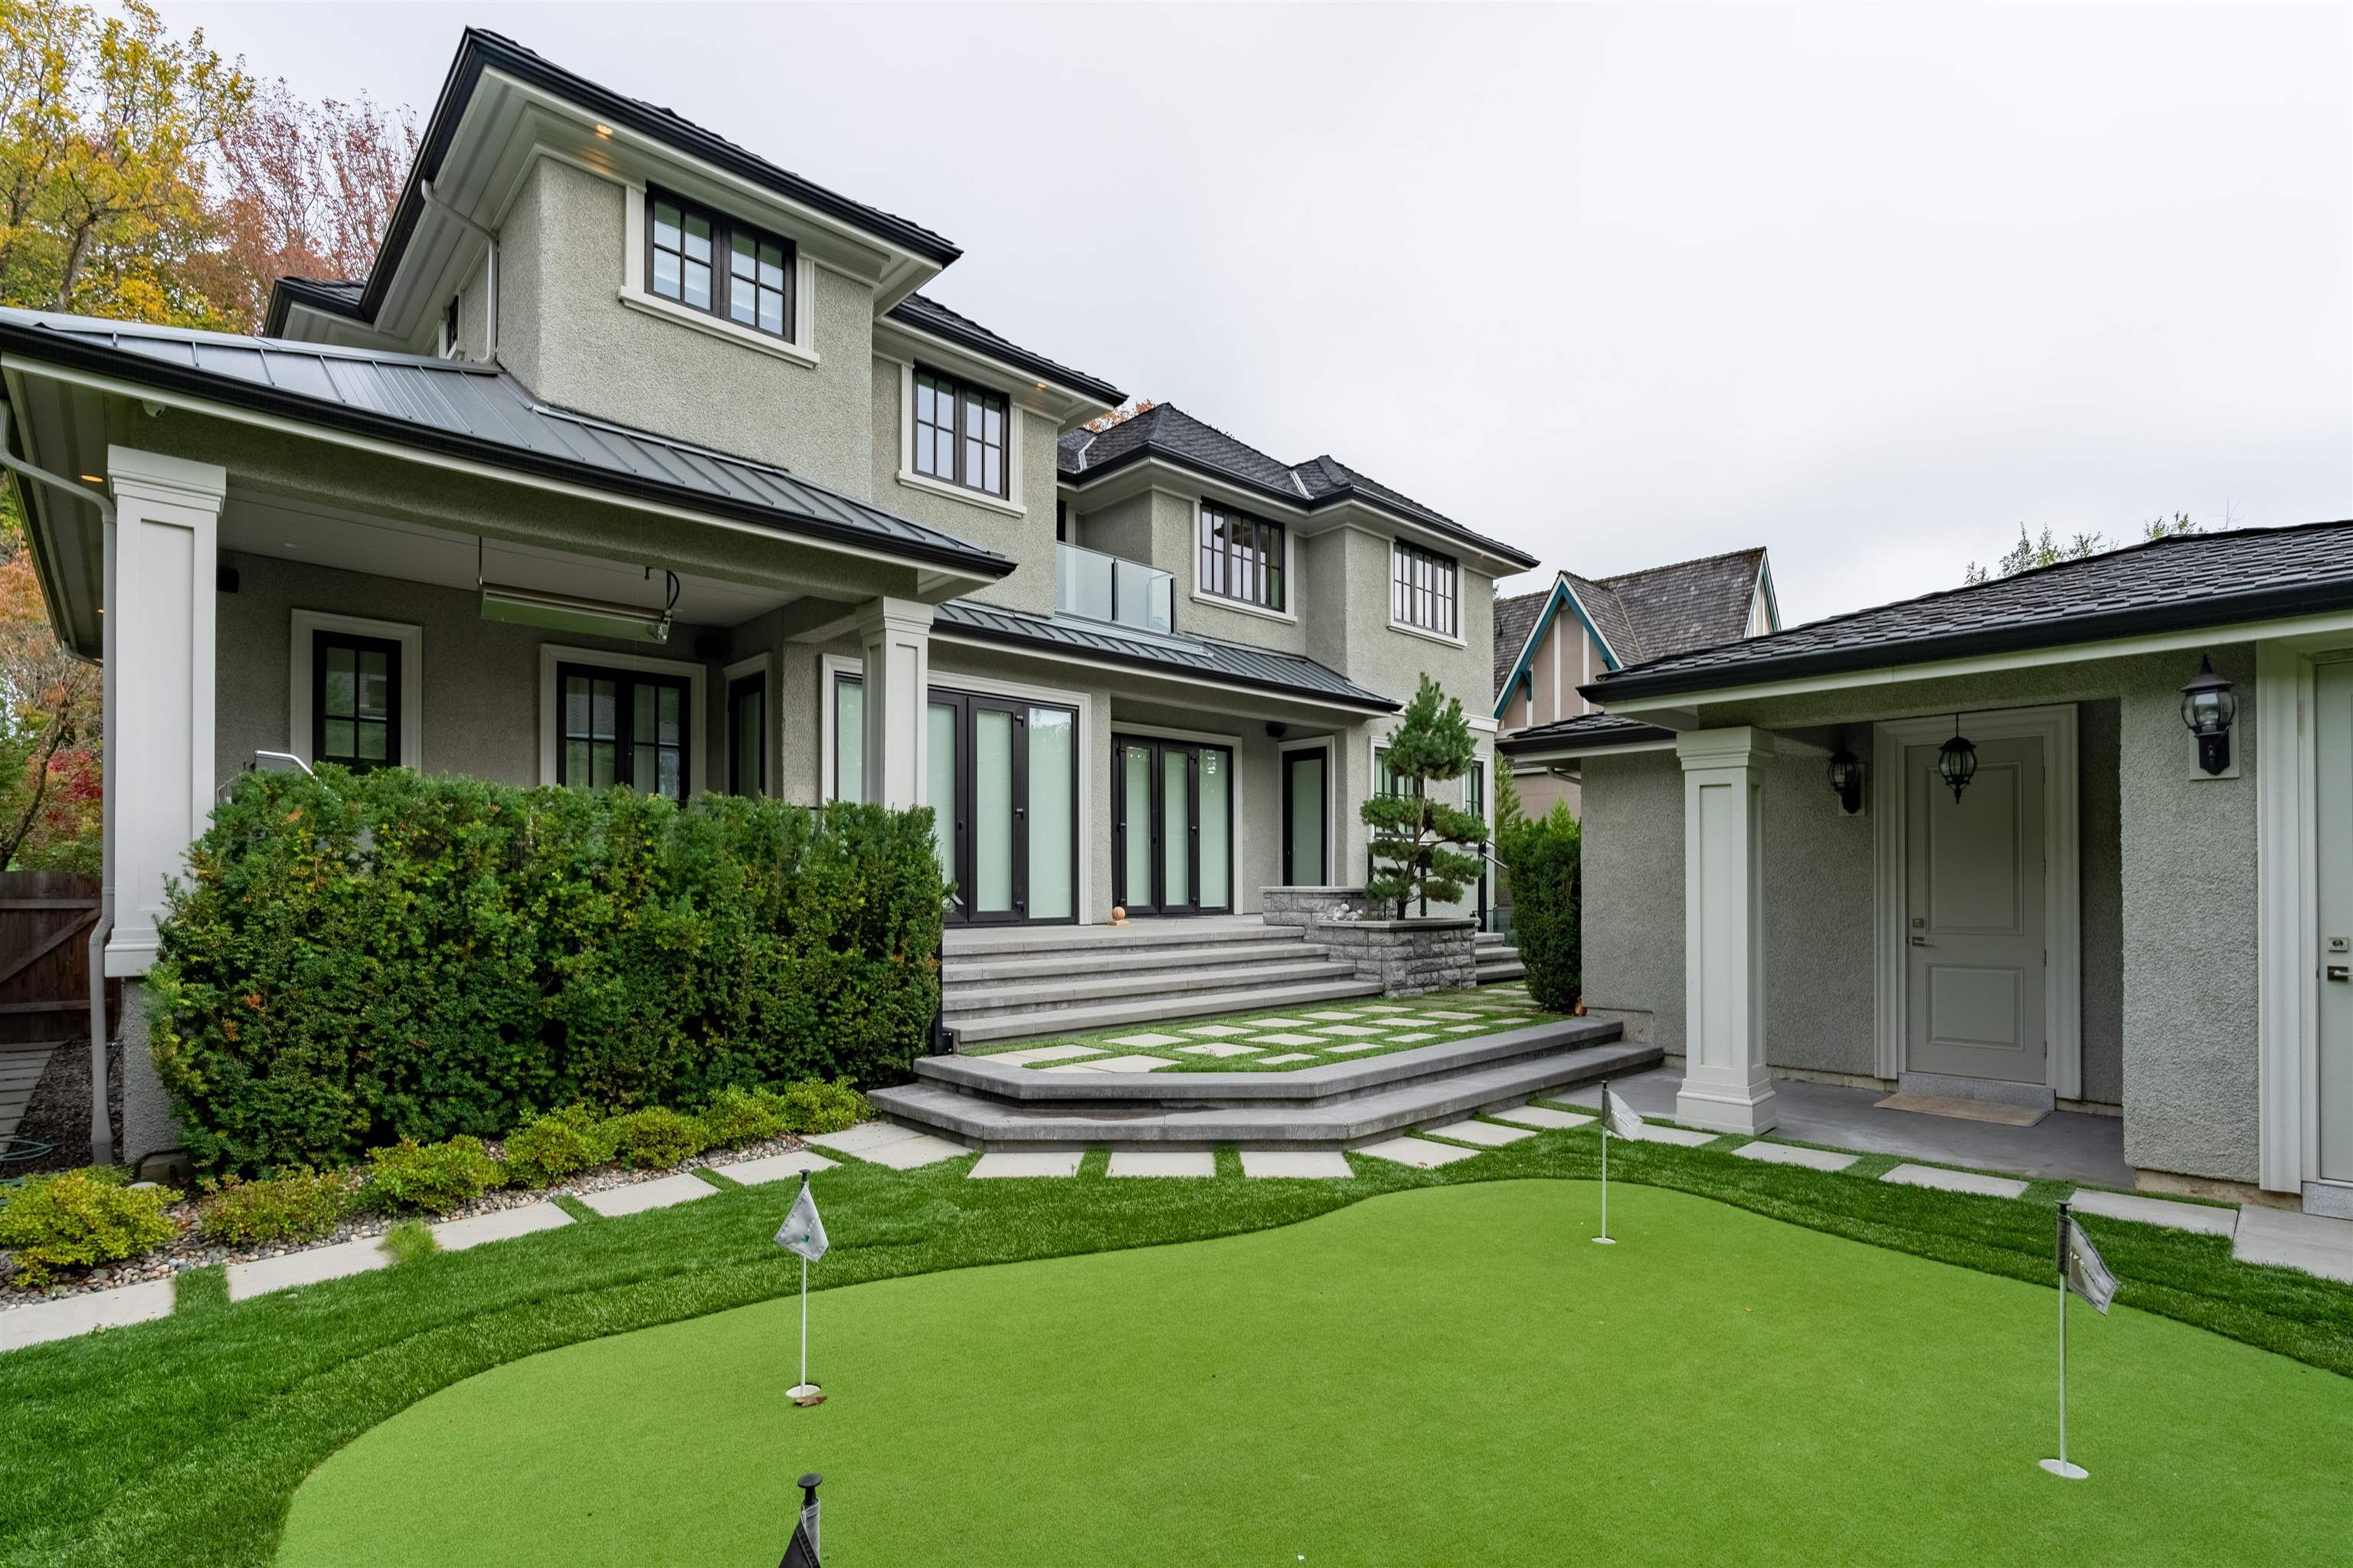 Main Photo: 1376 W 26TH Avenue in Vancouver: Shaughnessy House for sale (Vancouver West)  : MLS®# R2613165